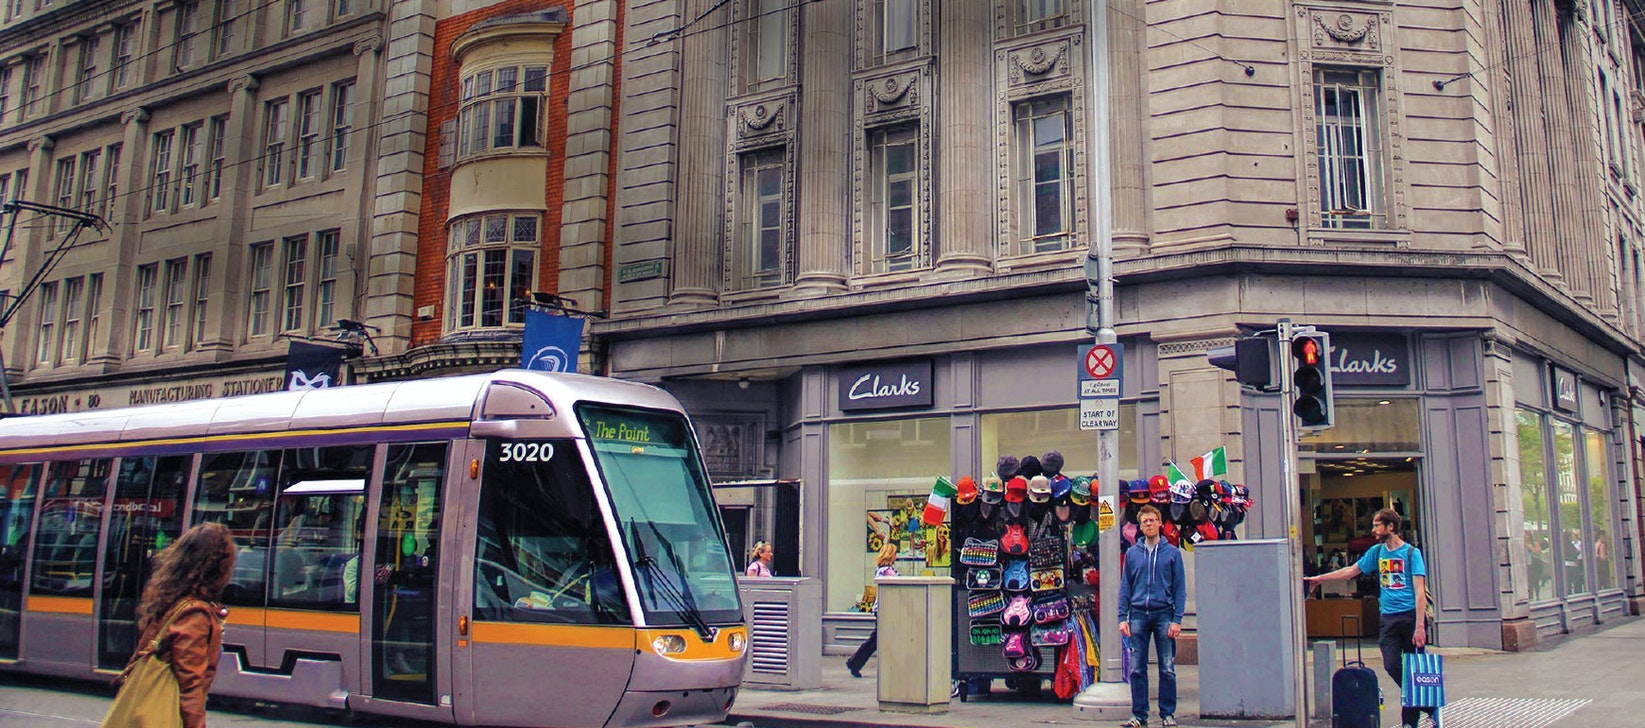 Confidence in Dublin economy continues to strengthen